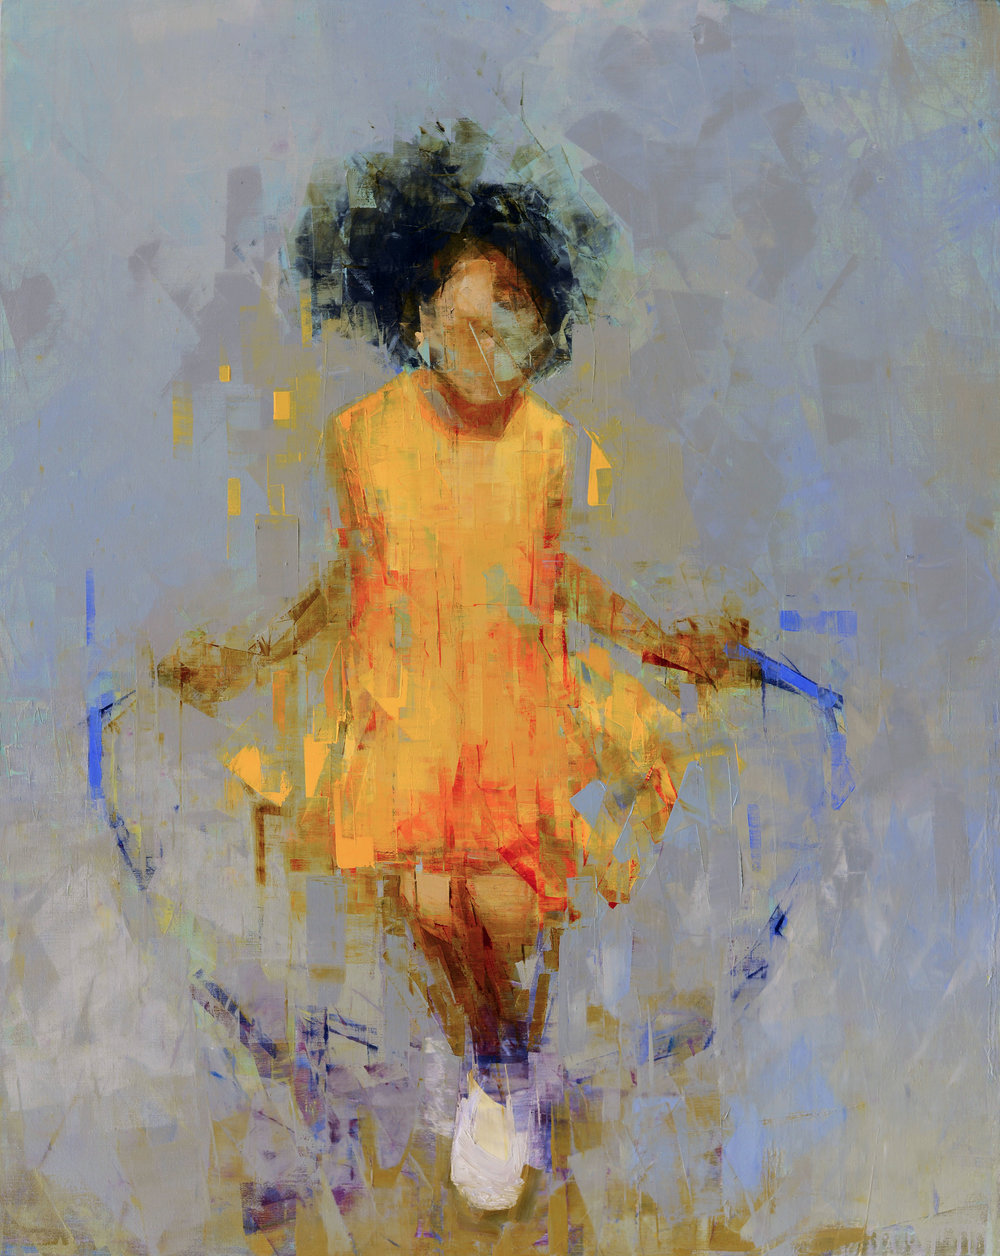 Rebecca Kinkead JUMP (GREY AND GOLD)_60x48.jpg